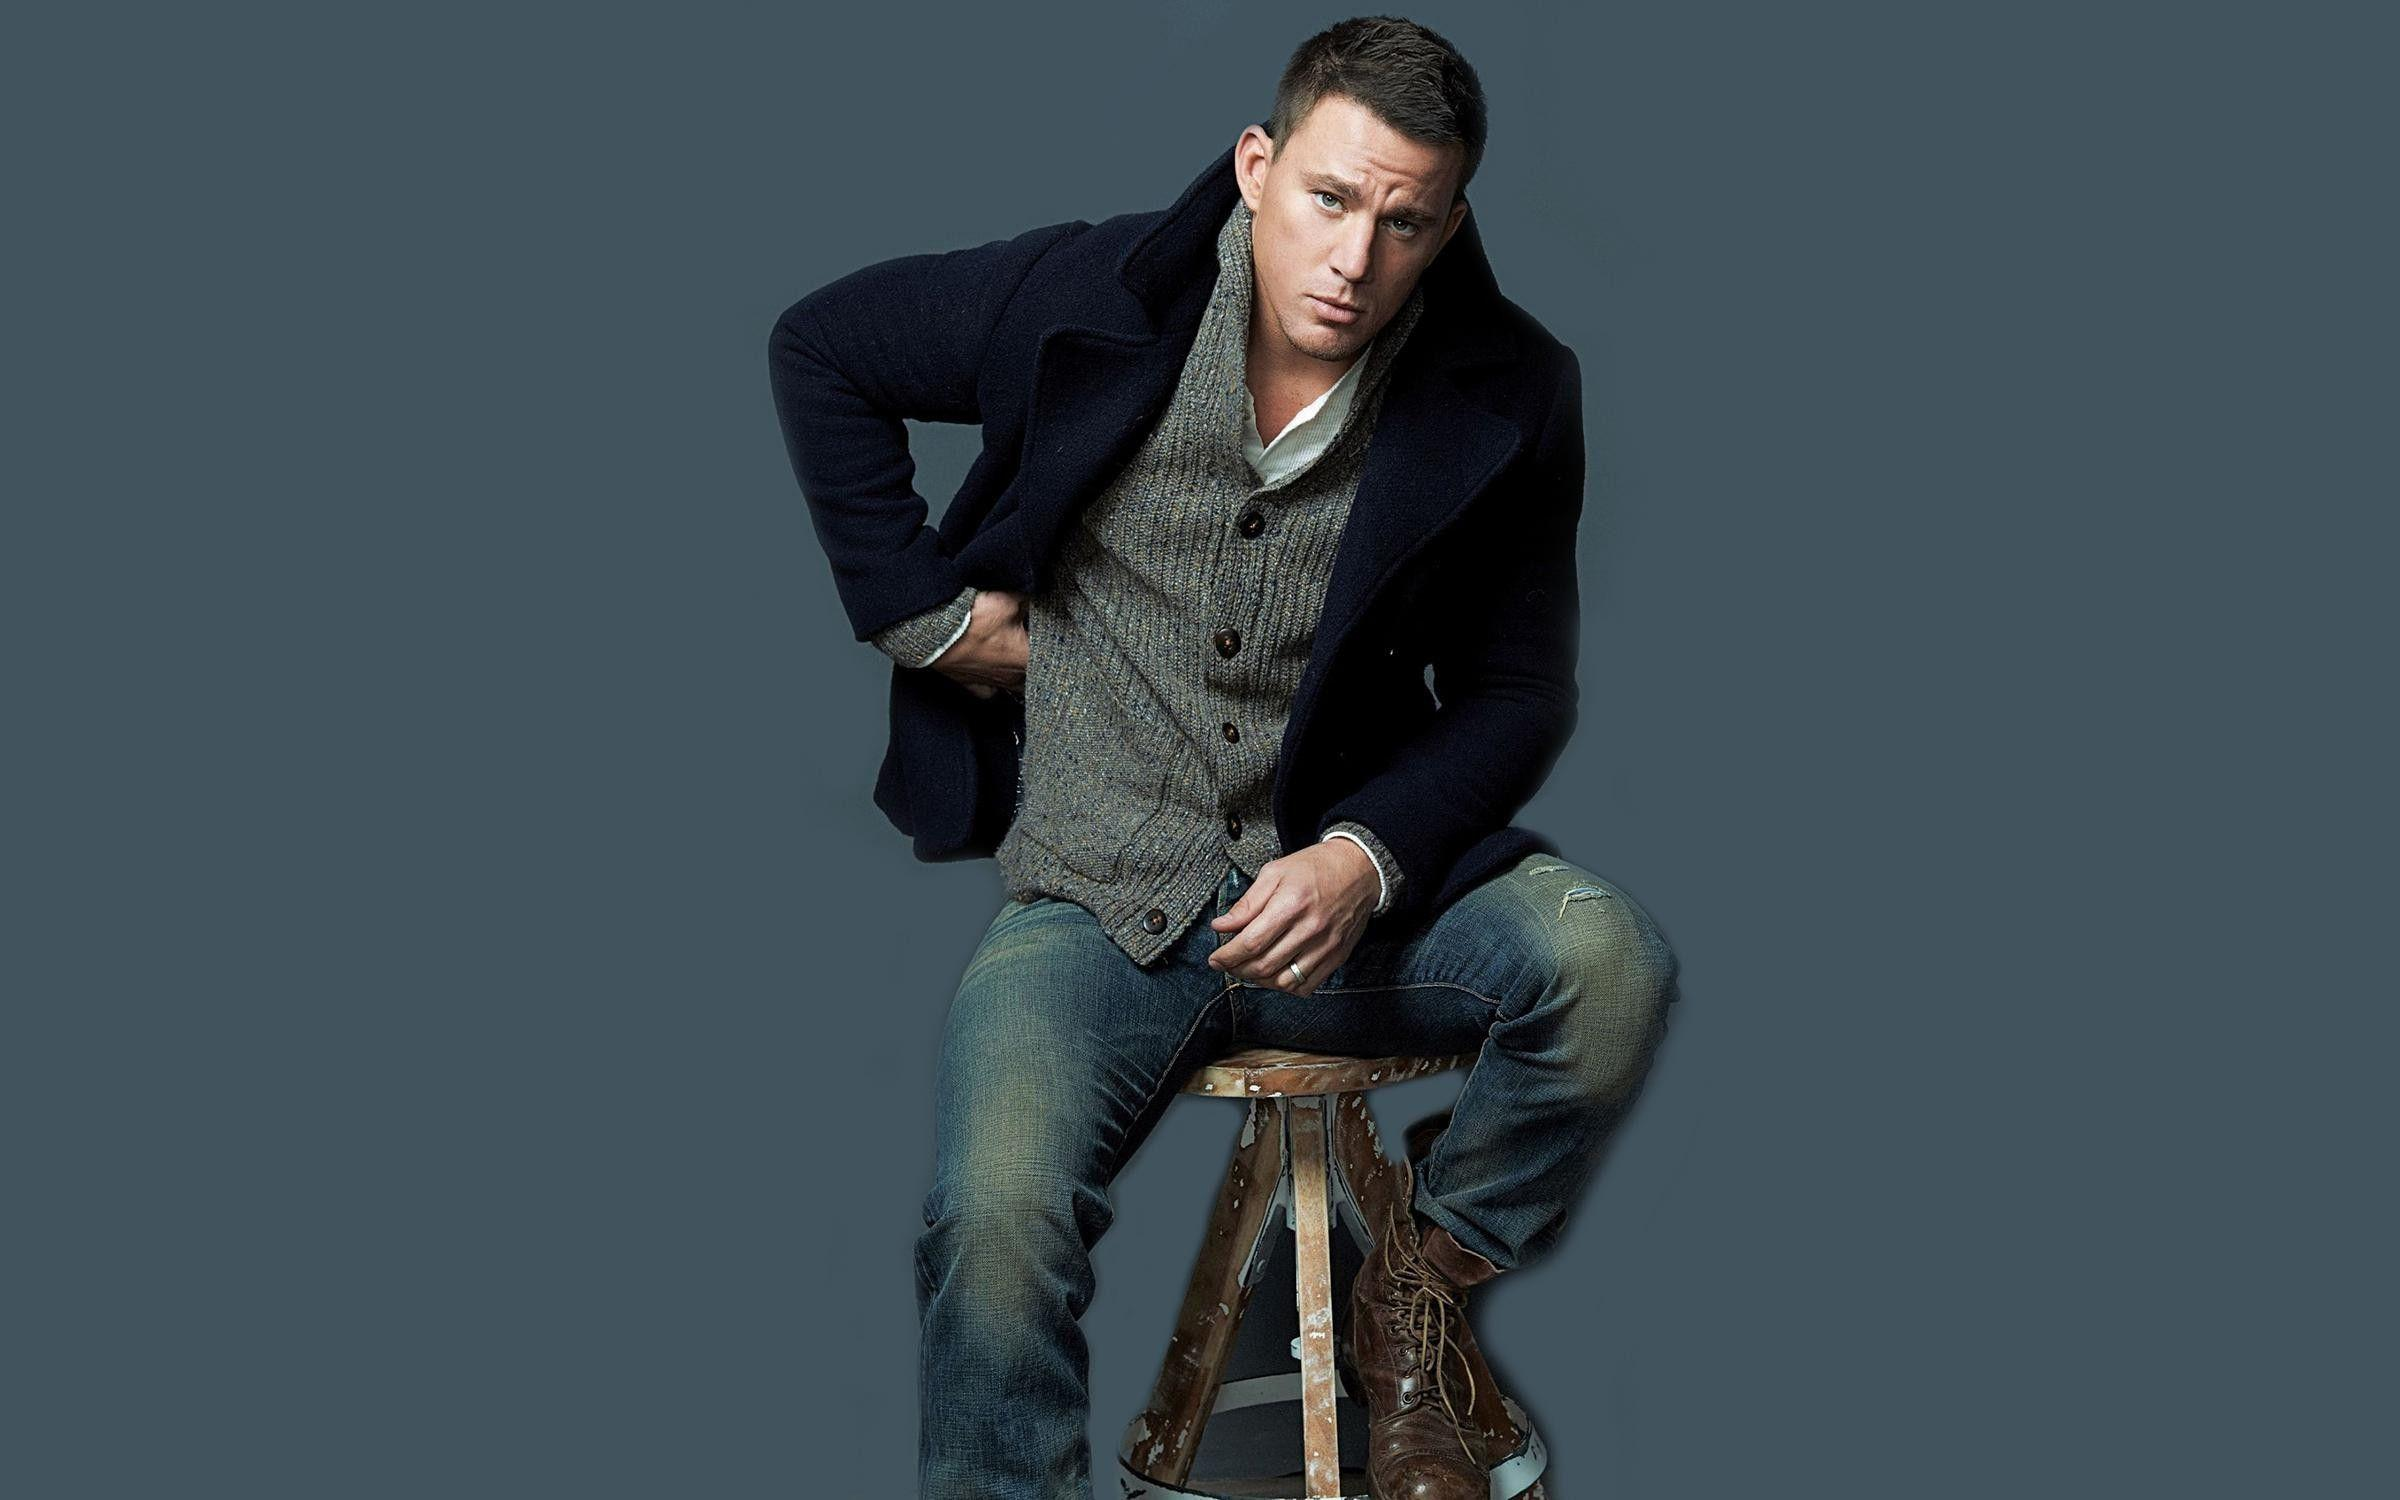 channing tatum stylish handsome hollywood actor desktop image wide